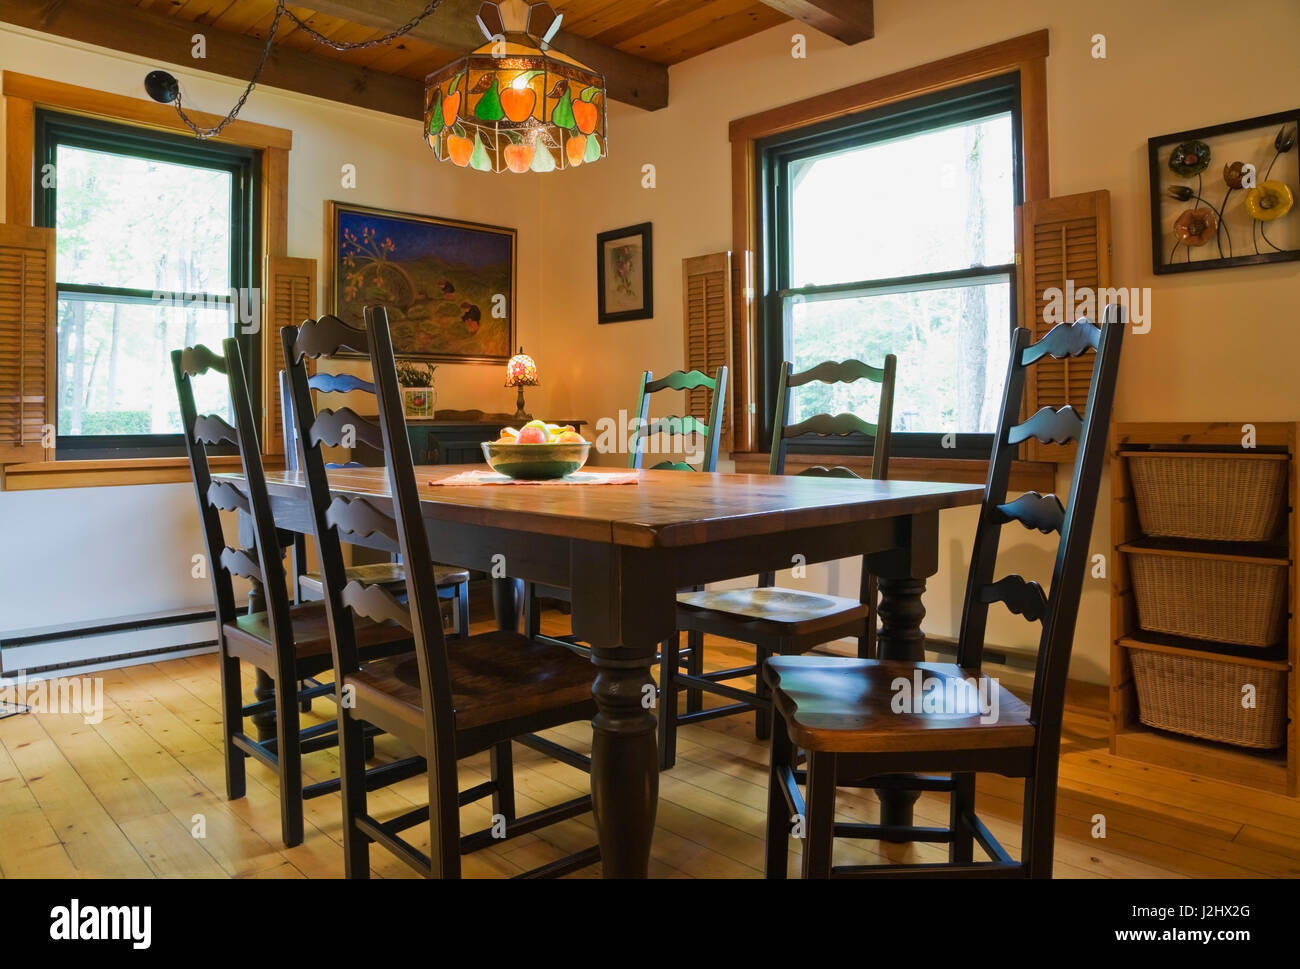 Dining Room With Antique Style Wooden Dining Table And High Back